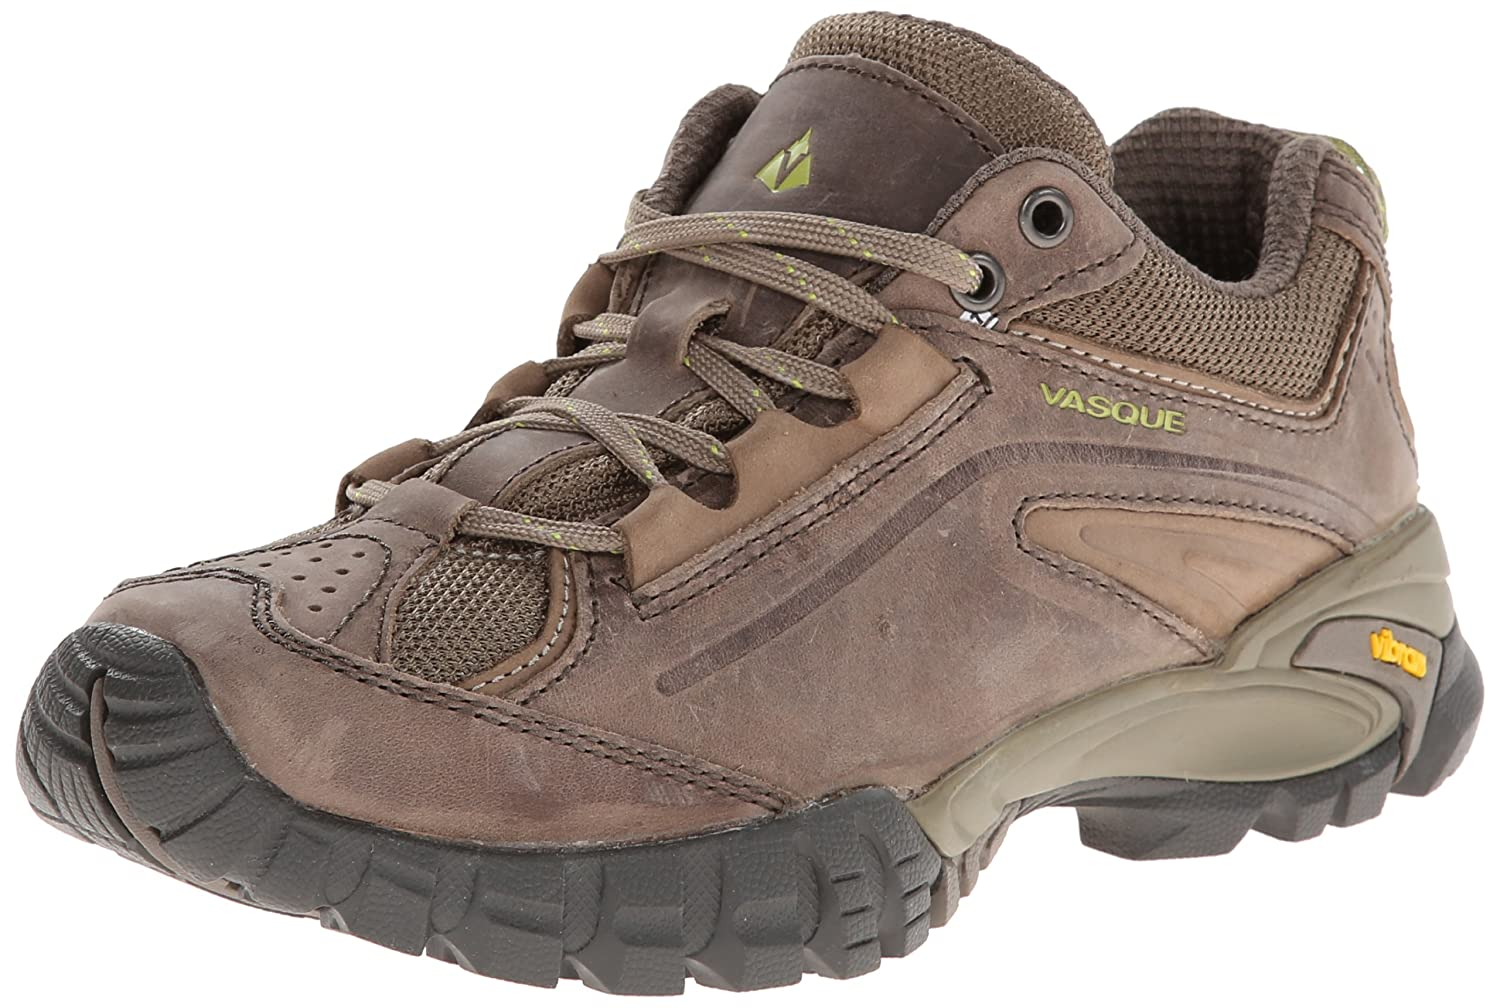 Vasque Women's Mantra 2.0 Hiking Shoe B005EQ9U9M 10 B(M) US|Bungee Cord/Bright Chartreuse